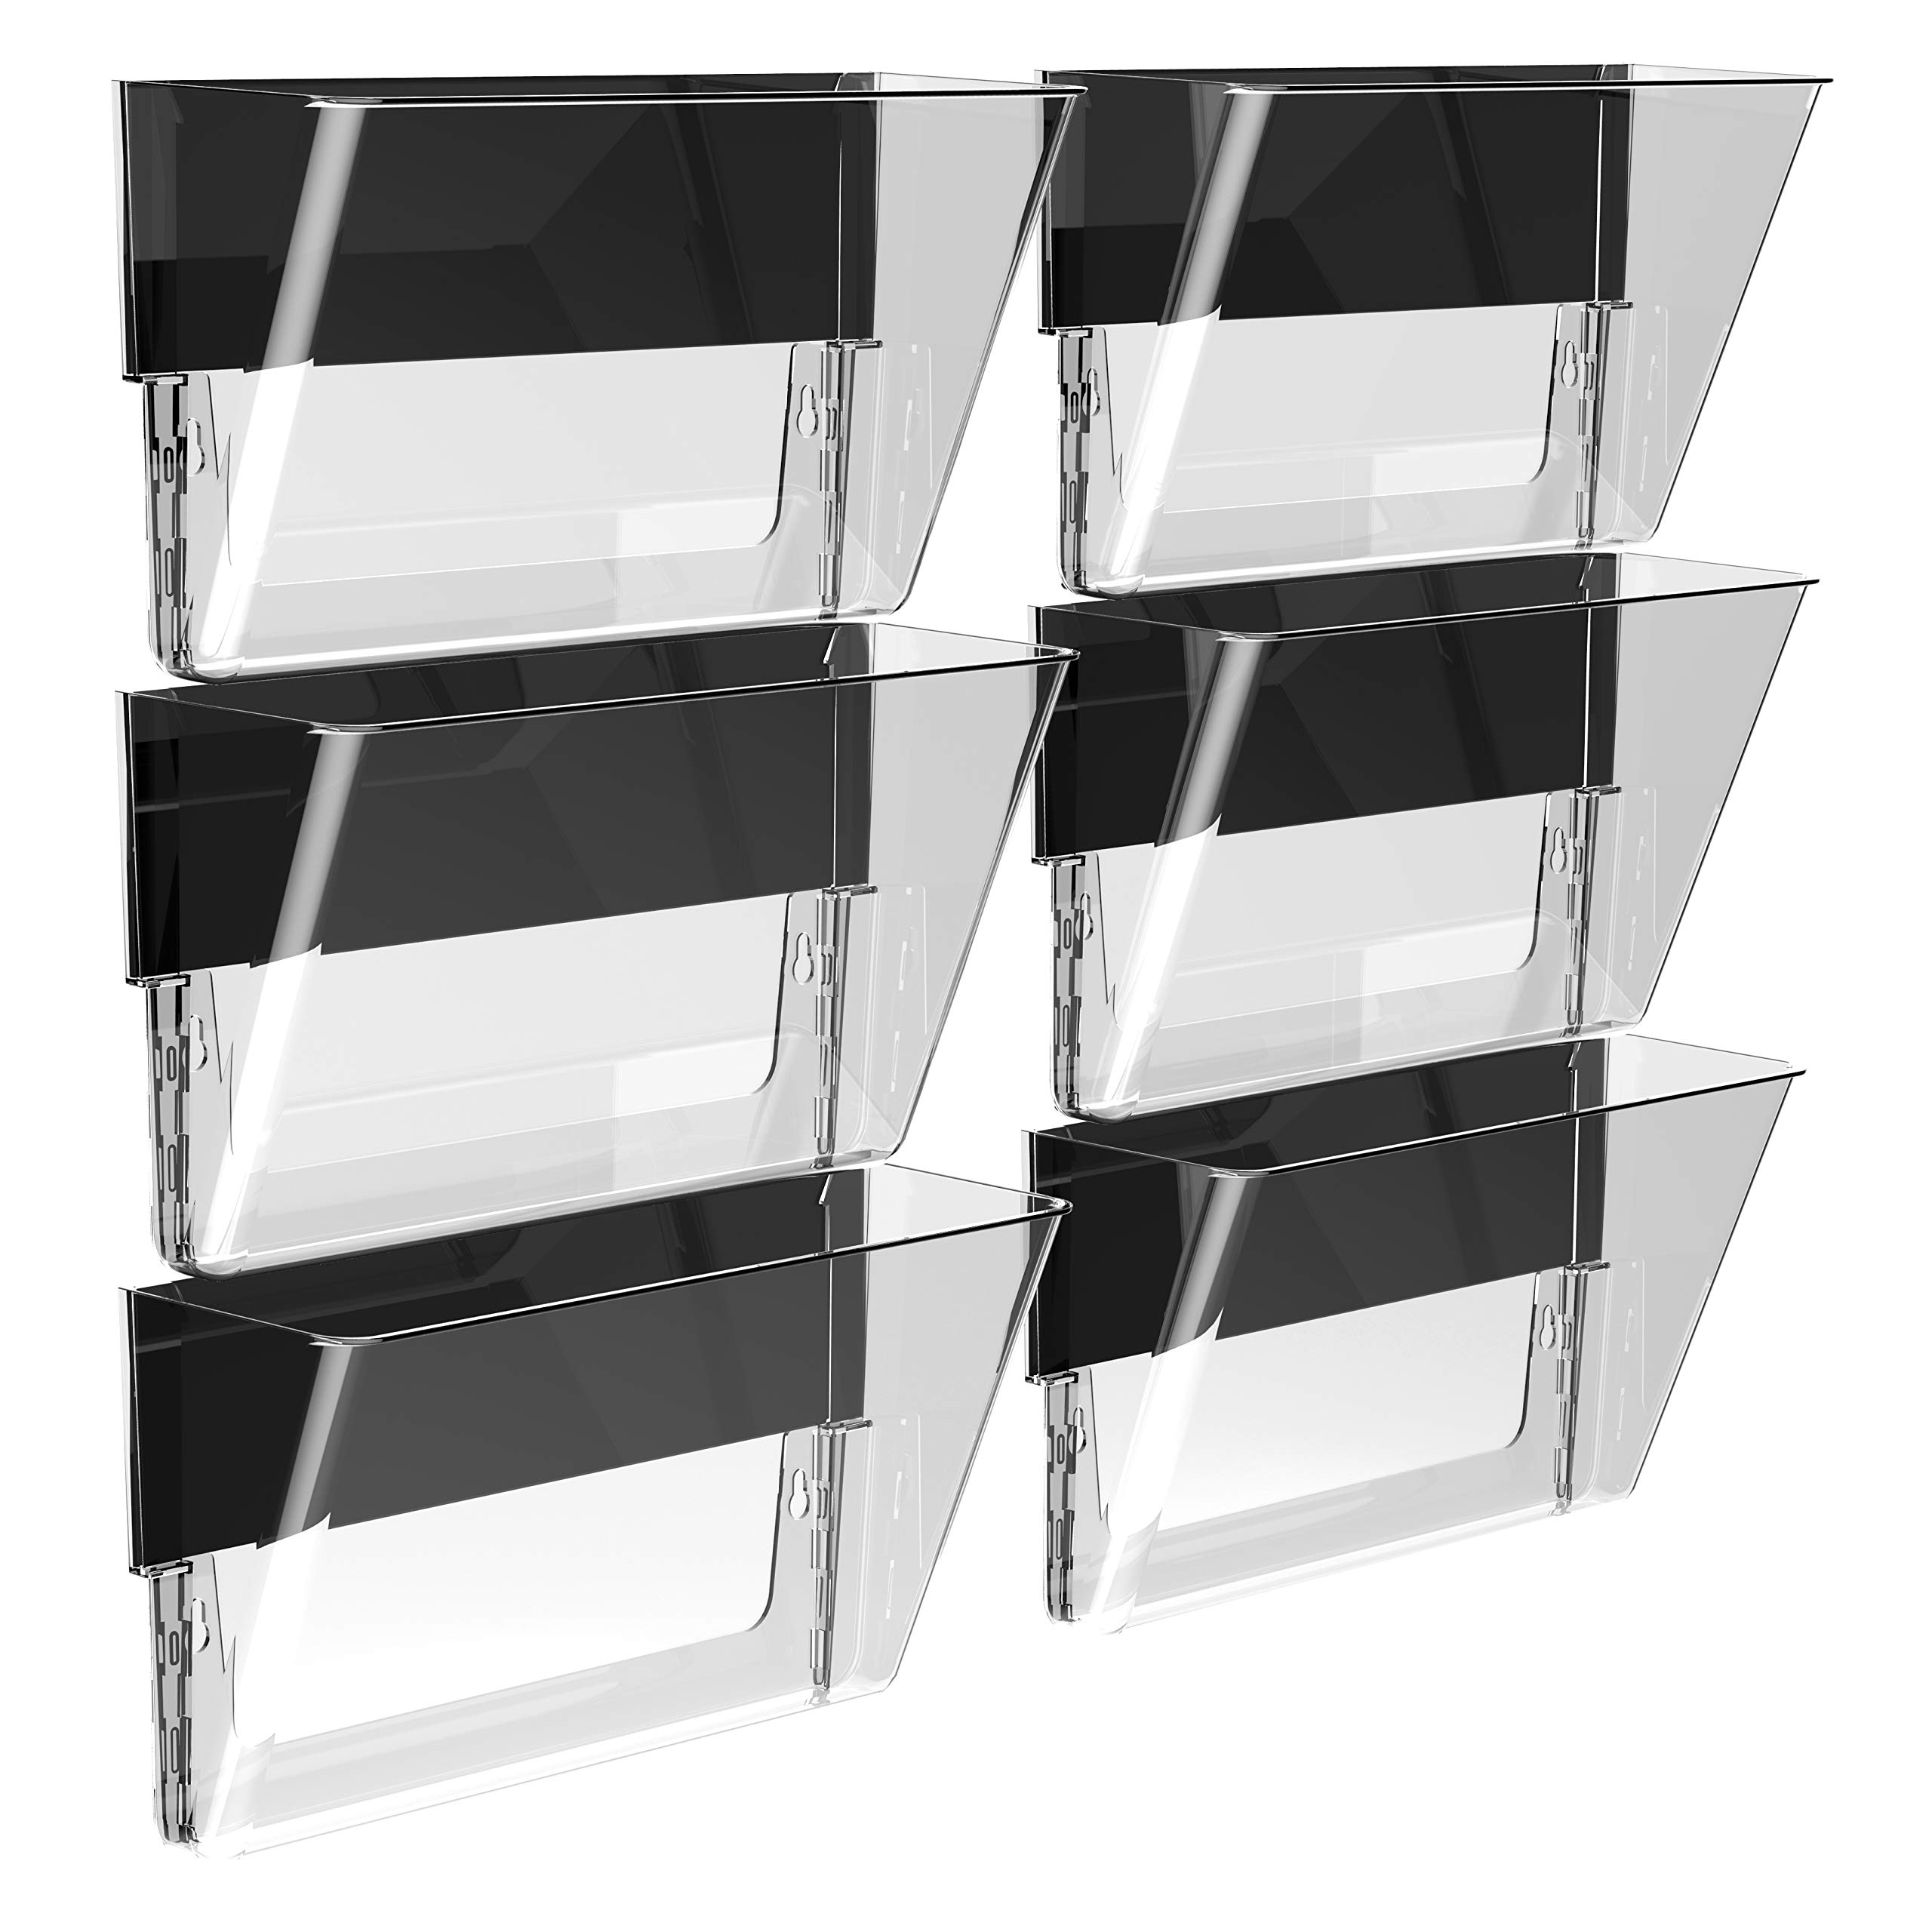 Storex 70236B06C Magnetic Wall Pocket, Letter Size, Clear (Pack of 6) by Storex